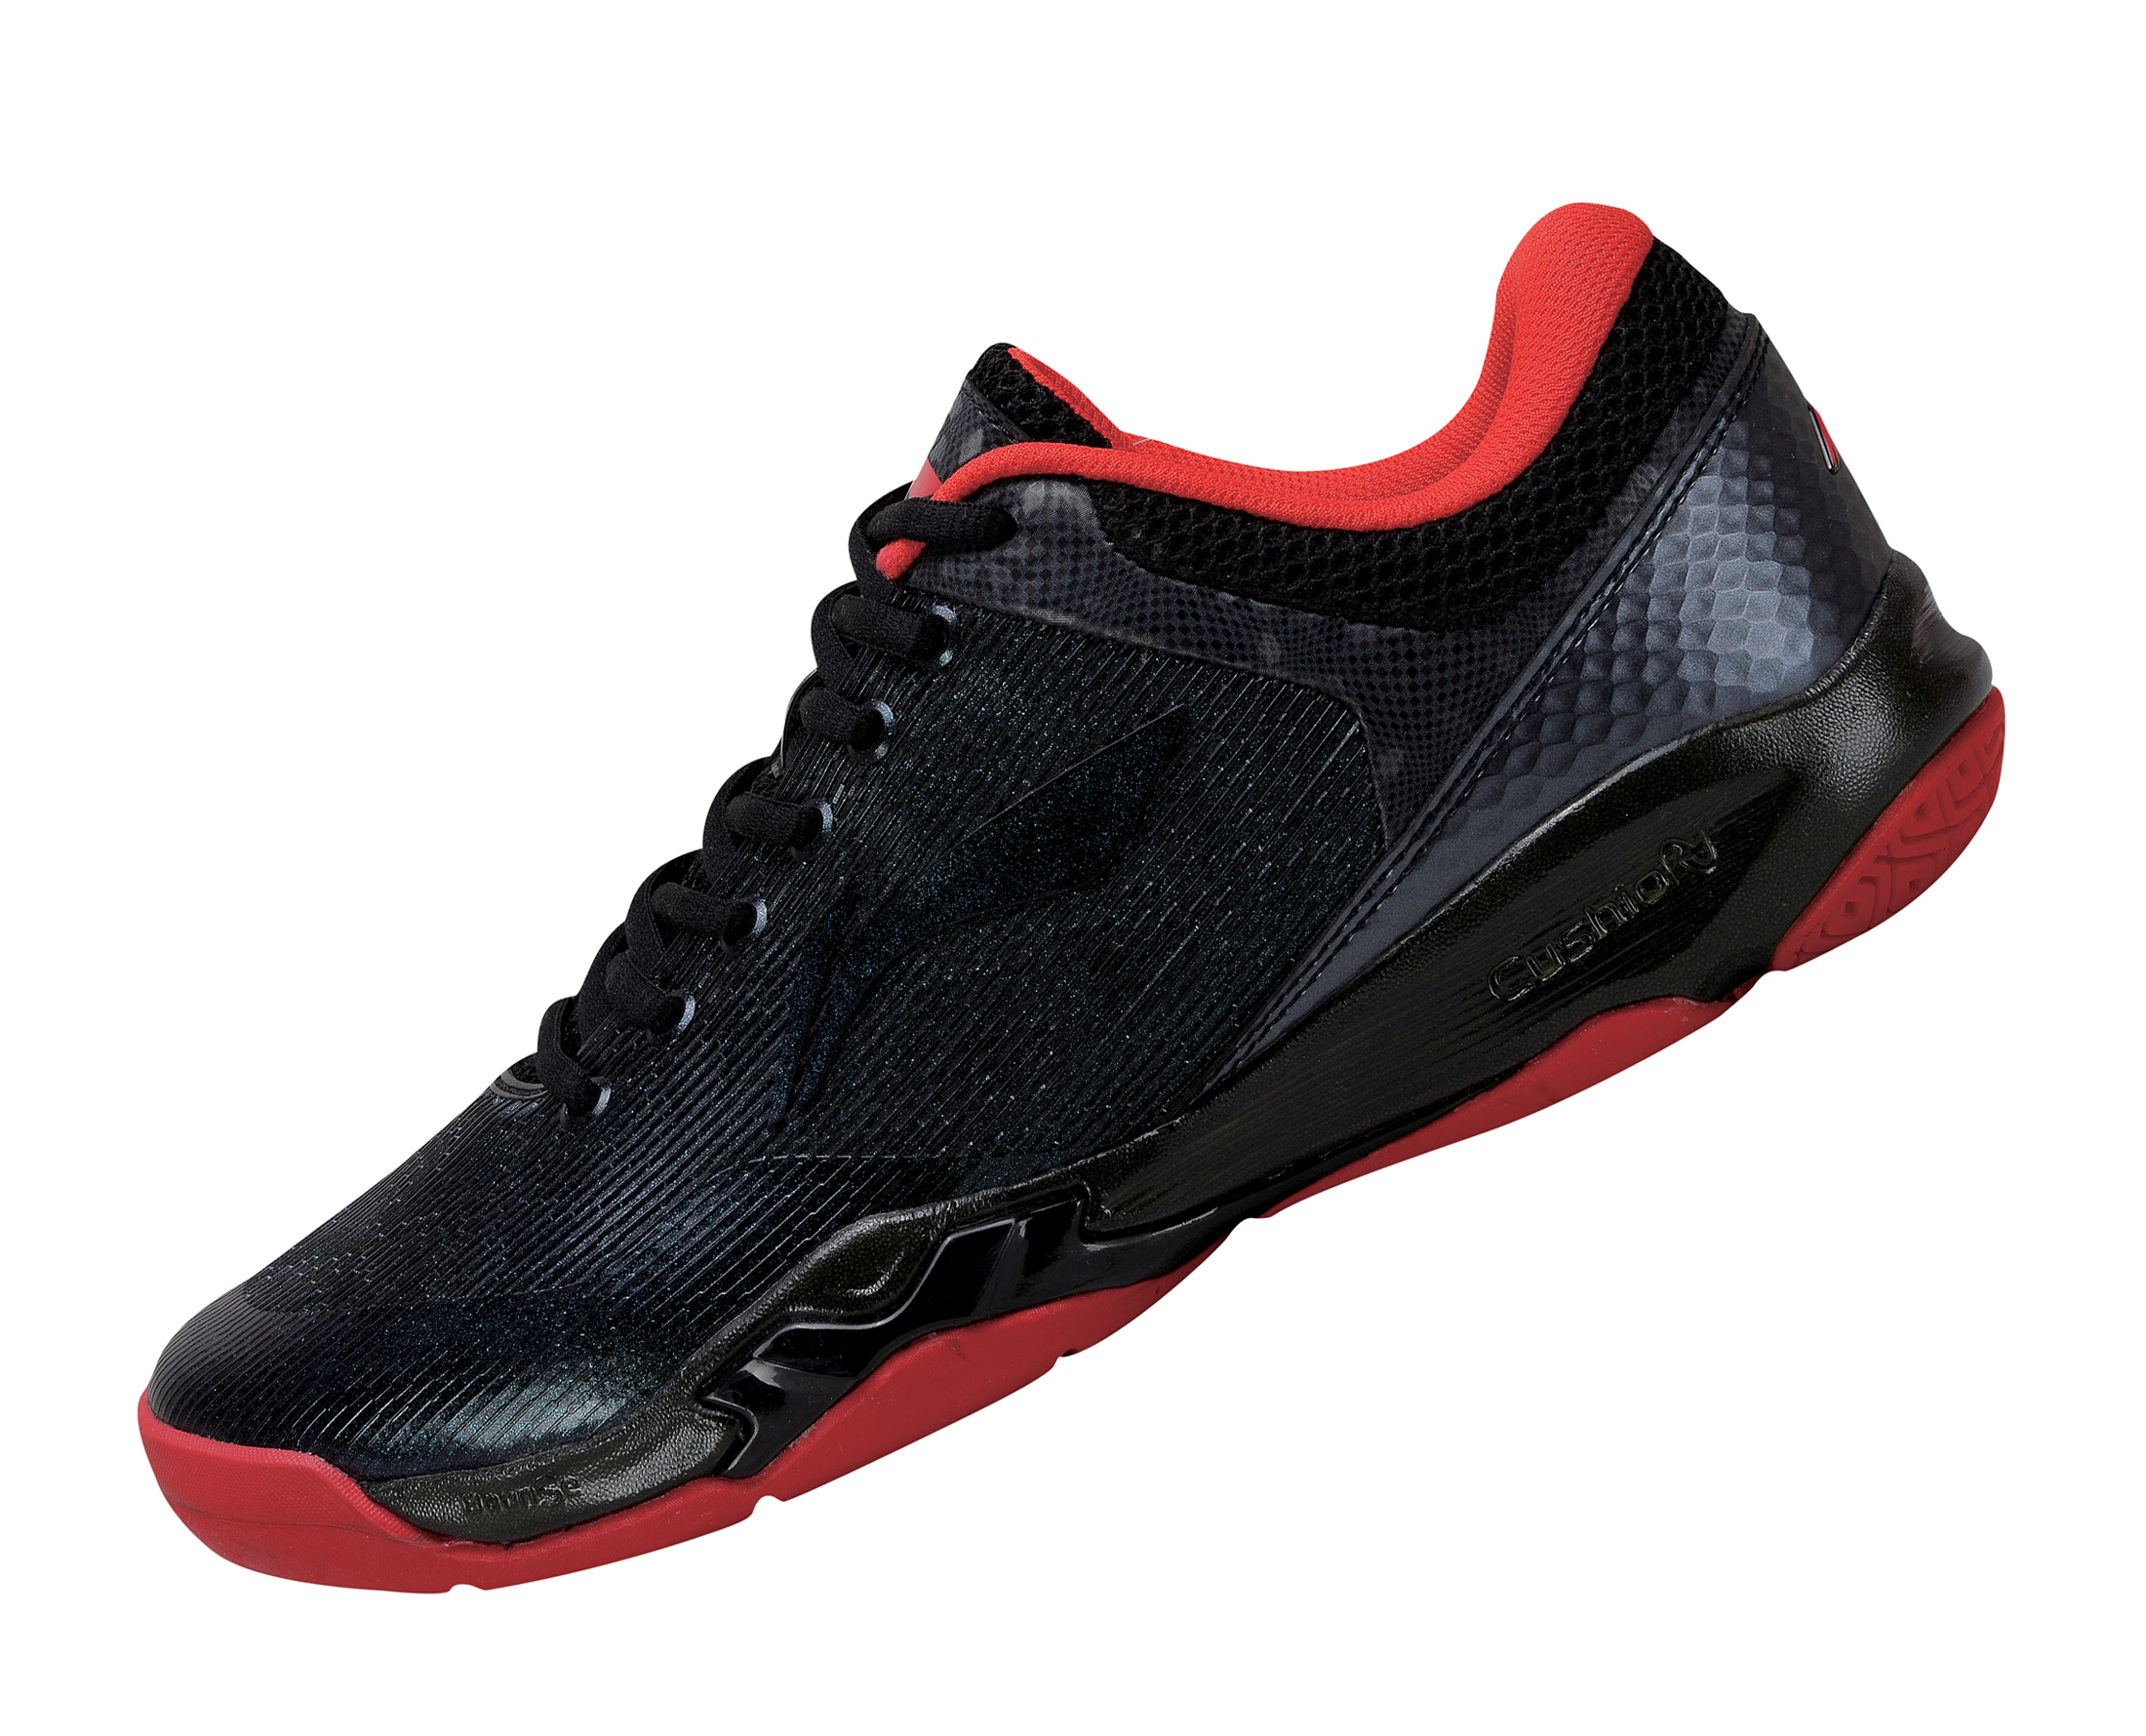 Men's Badminton Shoes [BLACK] AYZN005-5 [AYZN005-5]